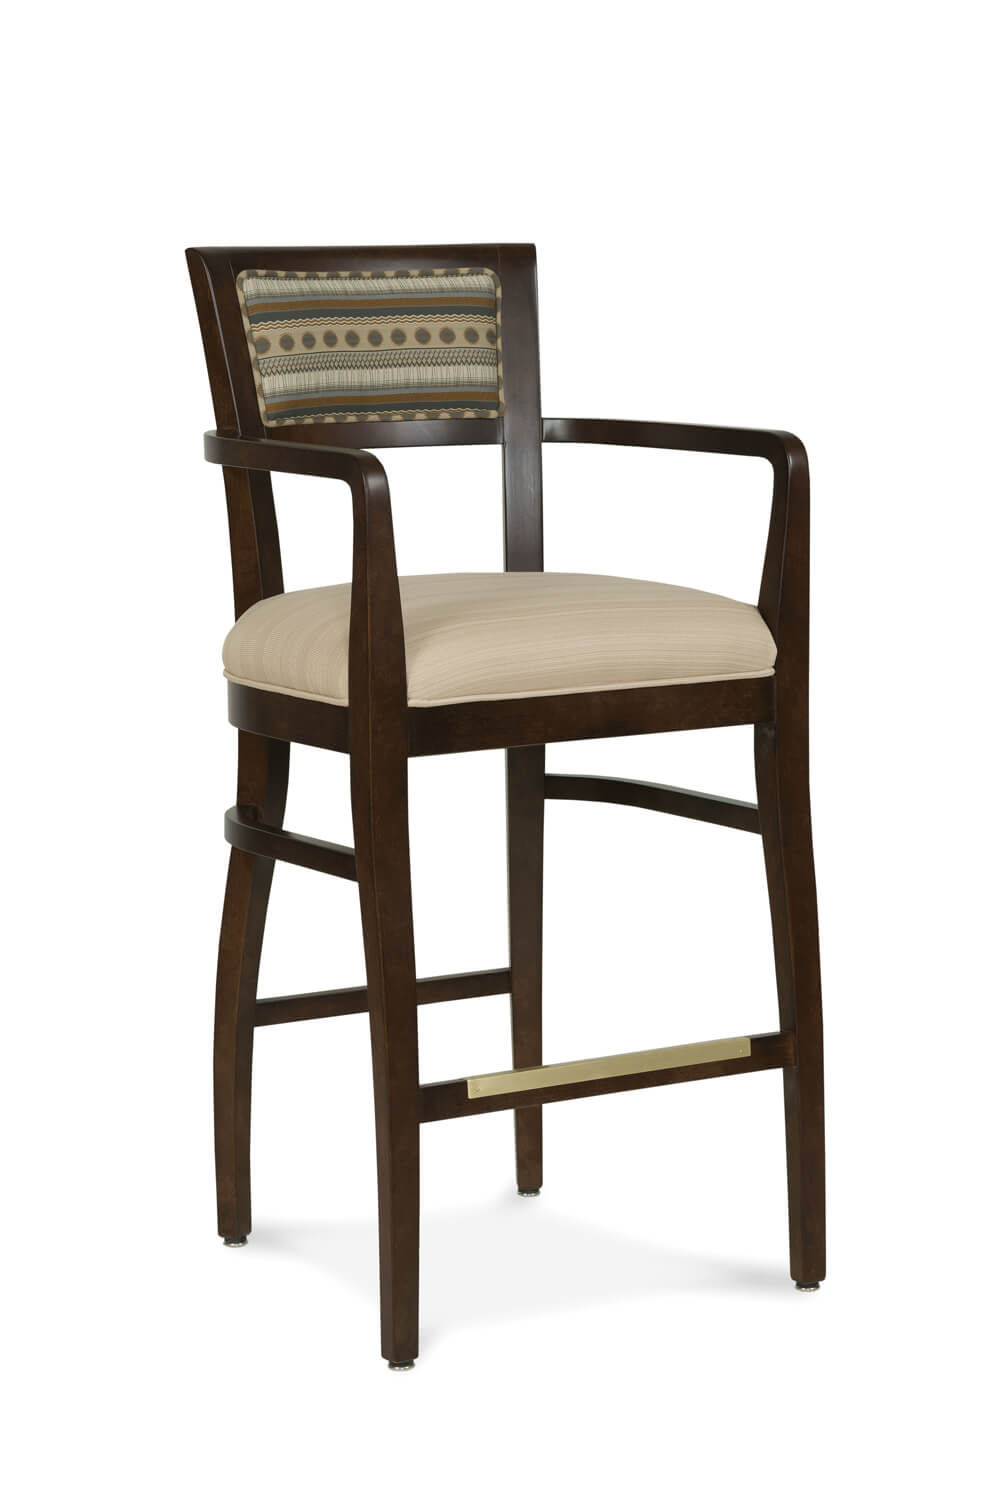 Albany Wooden Stool With Arms Amp Backrest Free Shipping